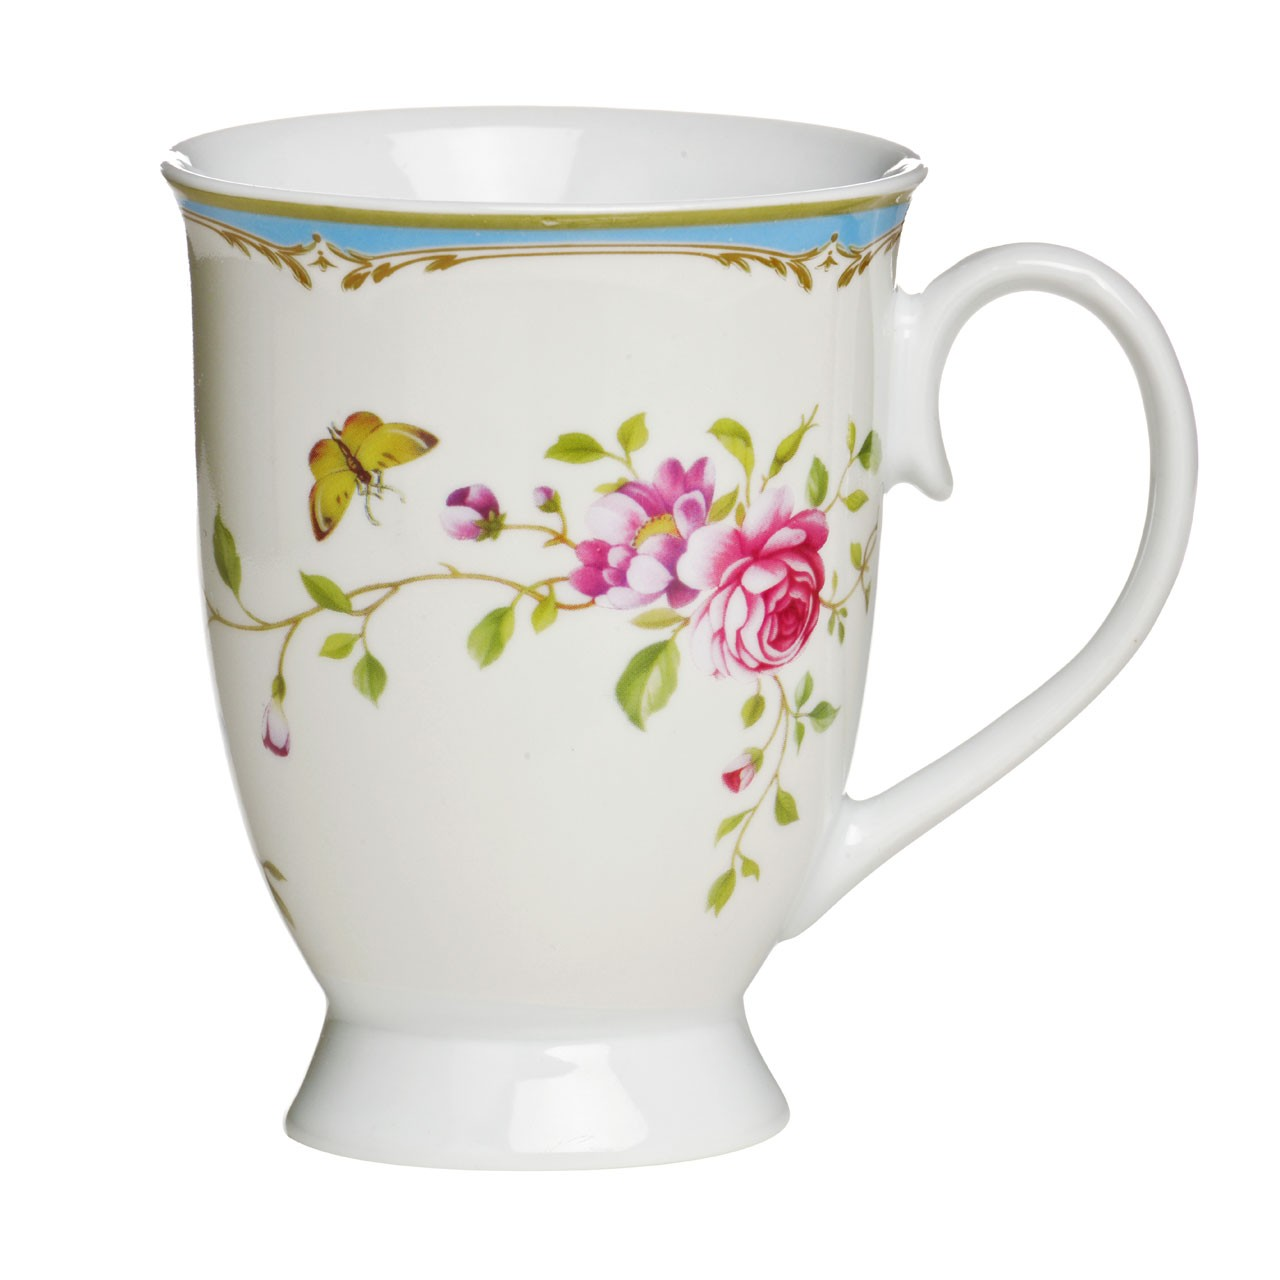 Gentle Rose Mugs, Porcelain, 12 oz - Set of 6